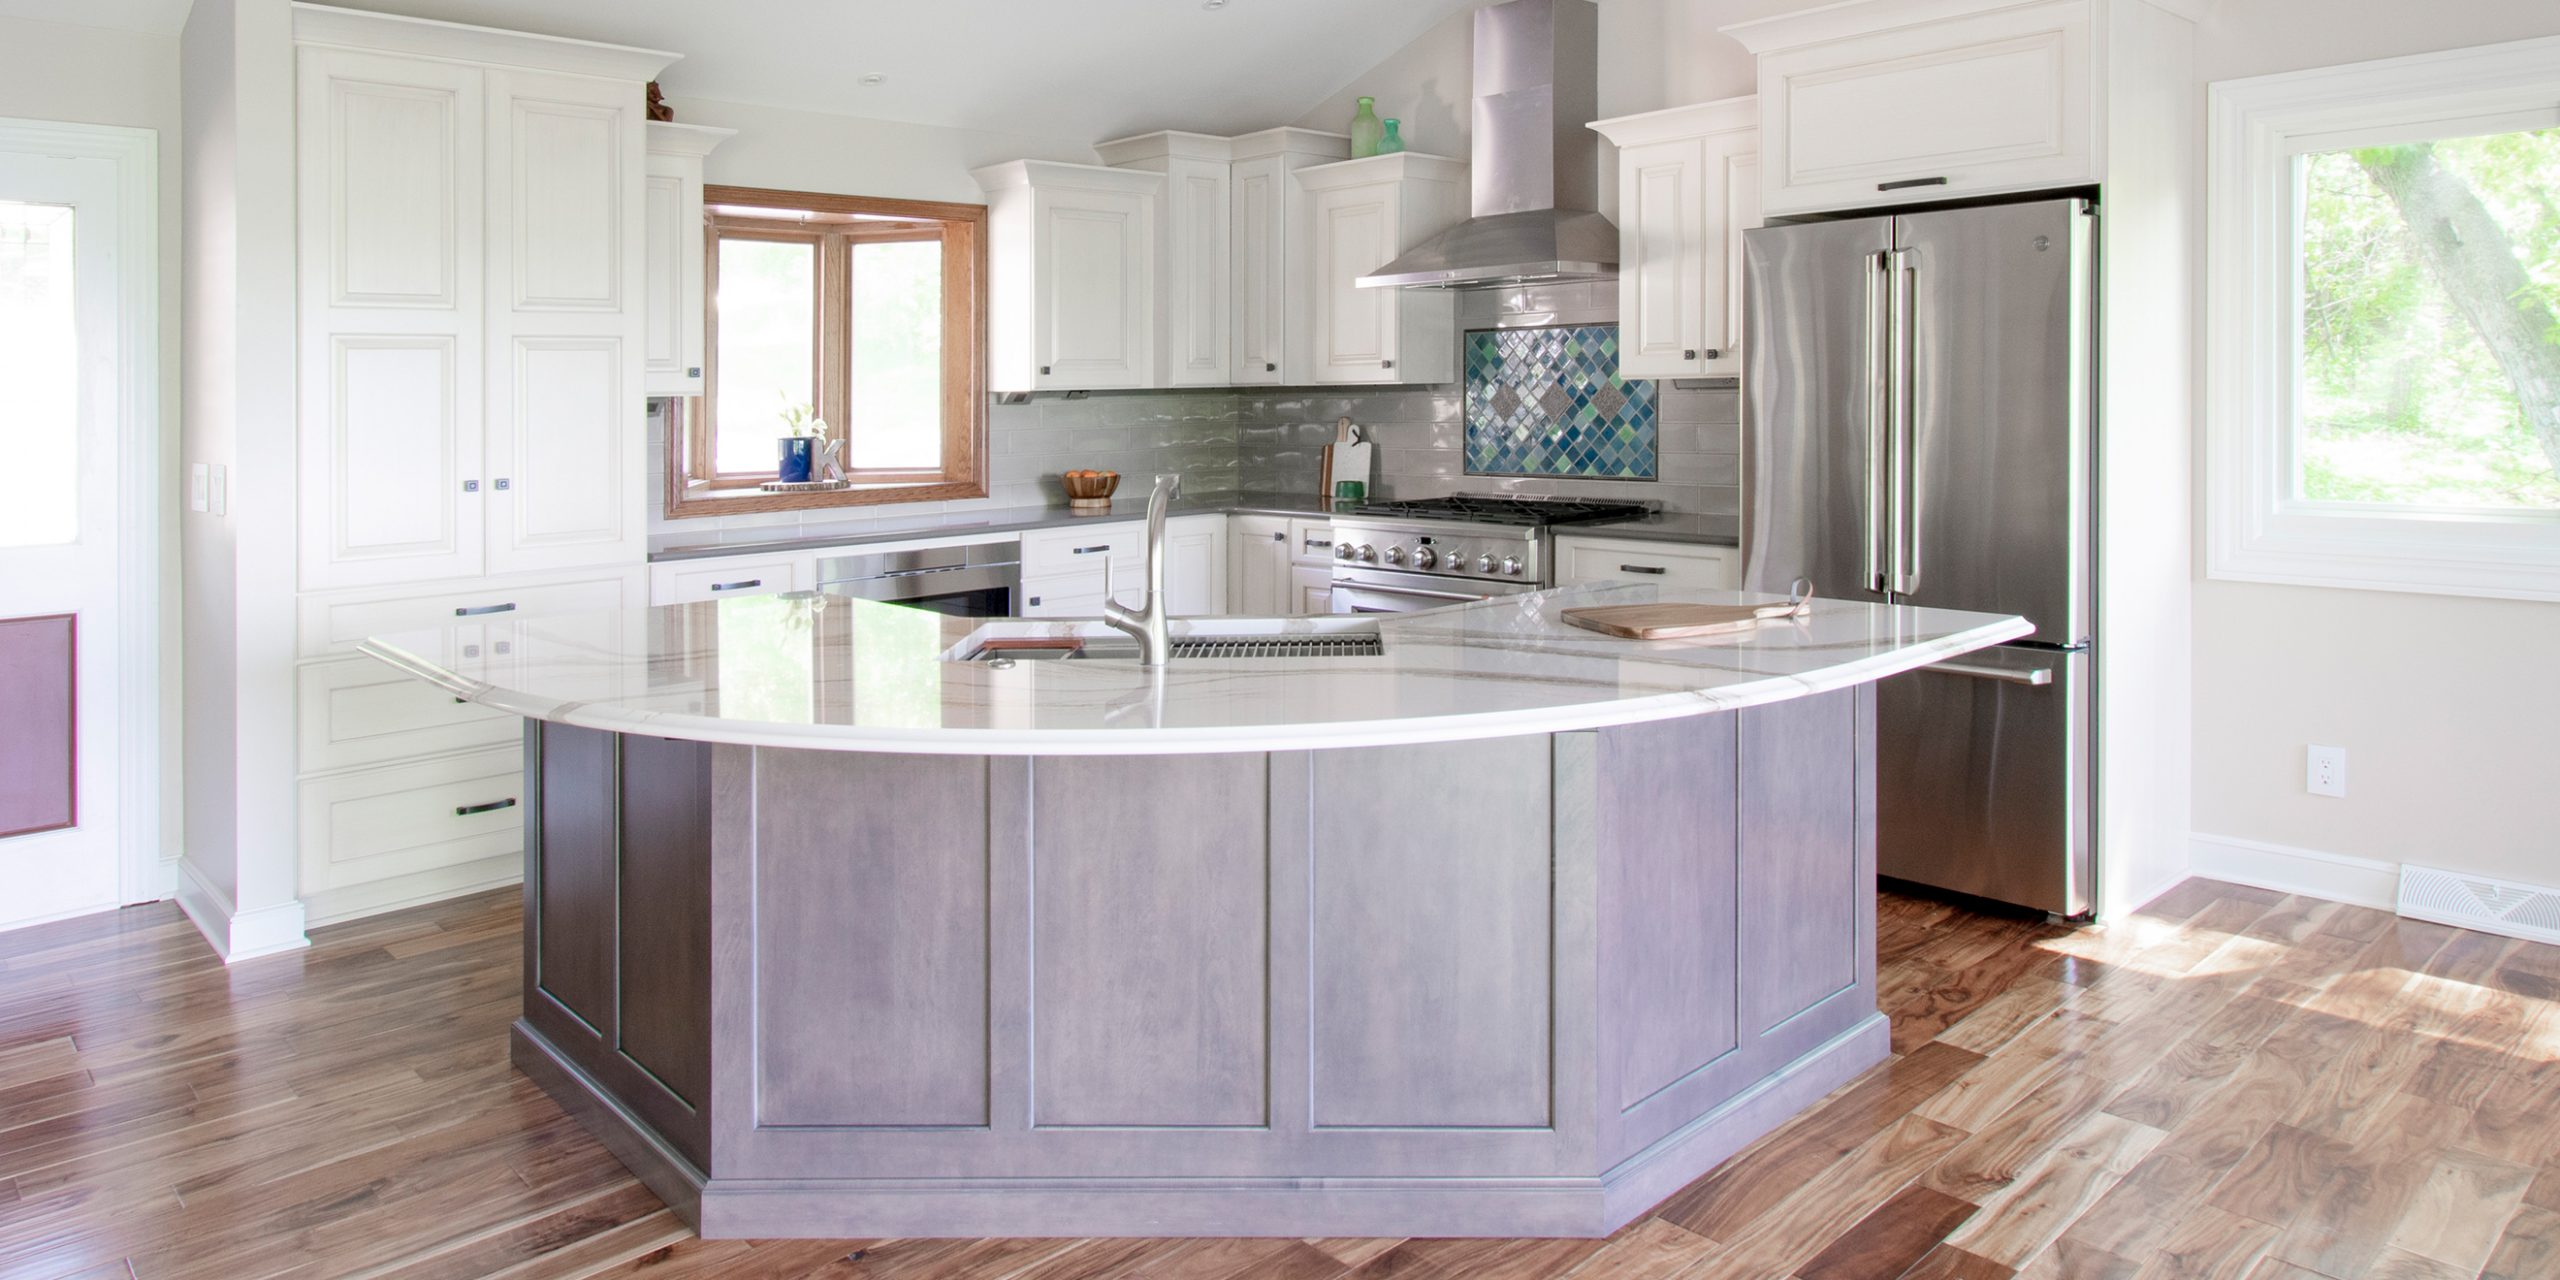 Open Concept Pewaukee Lake Kitchen